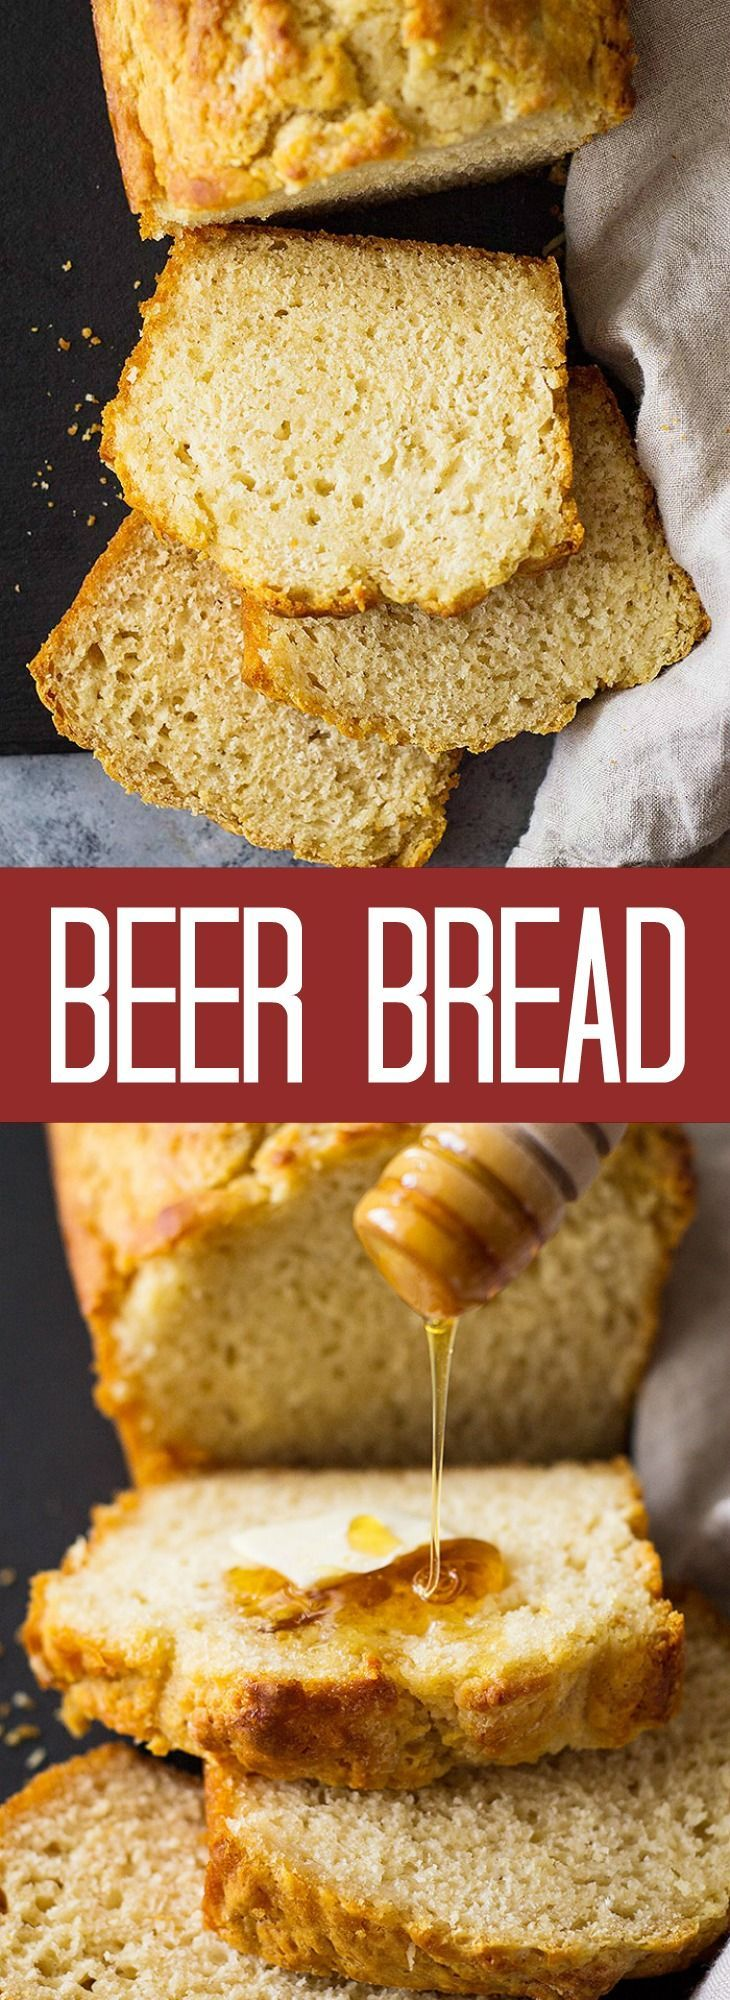 This homemade Beer Bread uses a few simple ingredients to make a wonderfully hearty bread! Great for any meal especially soups!